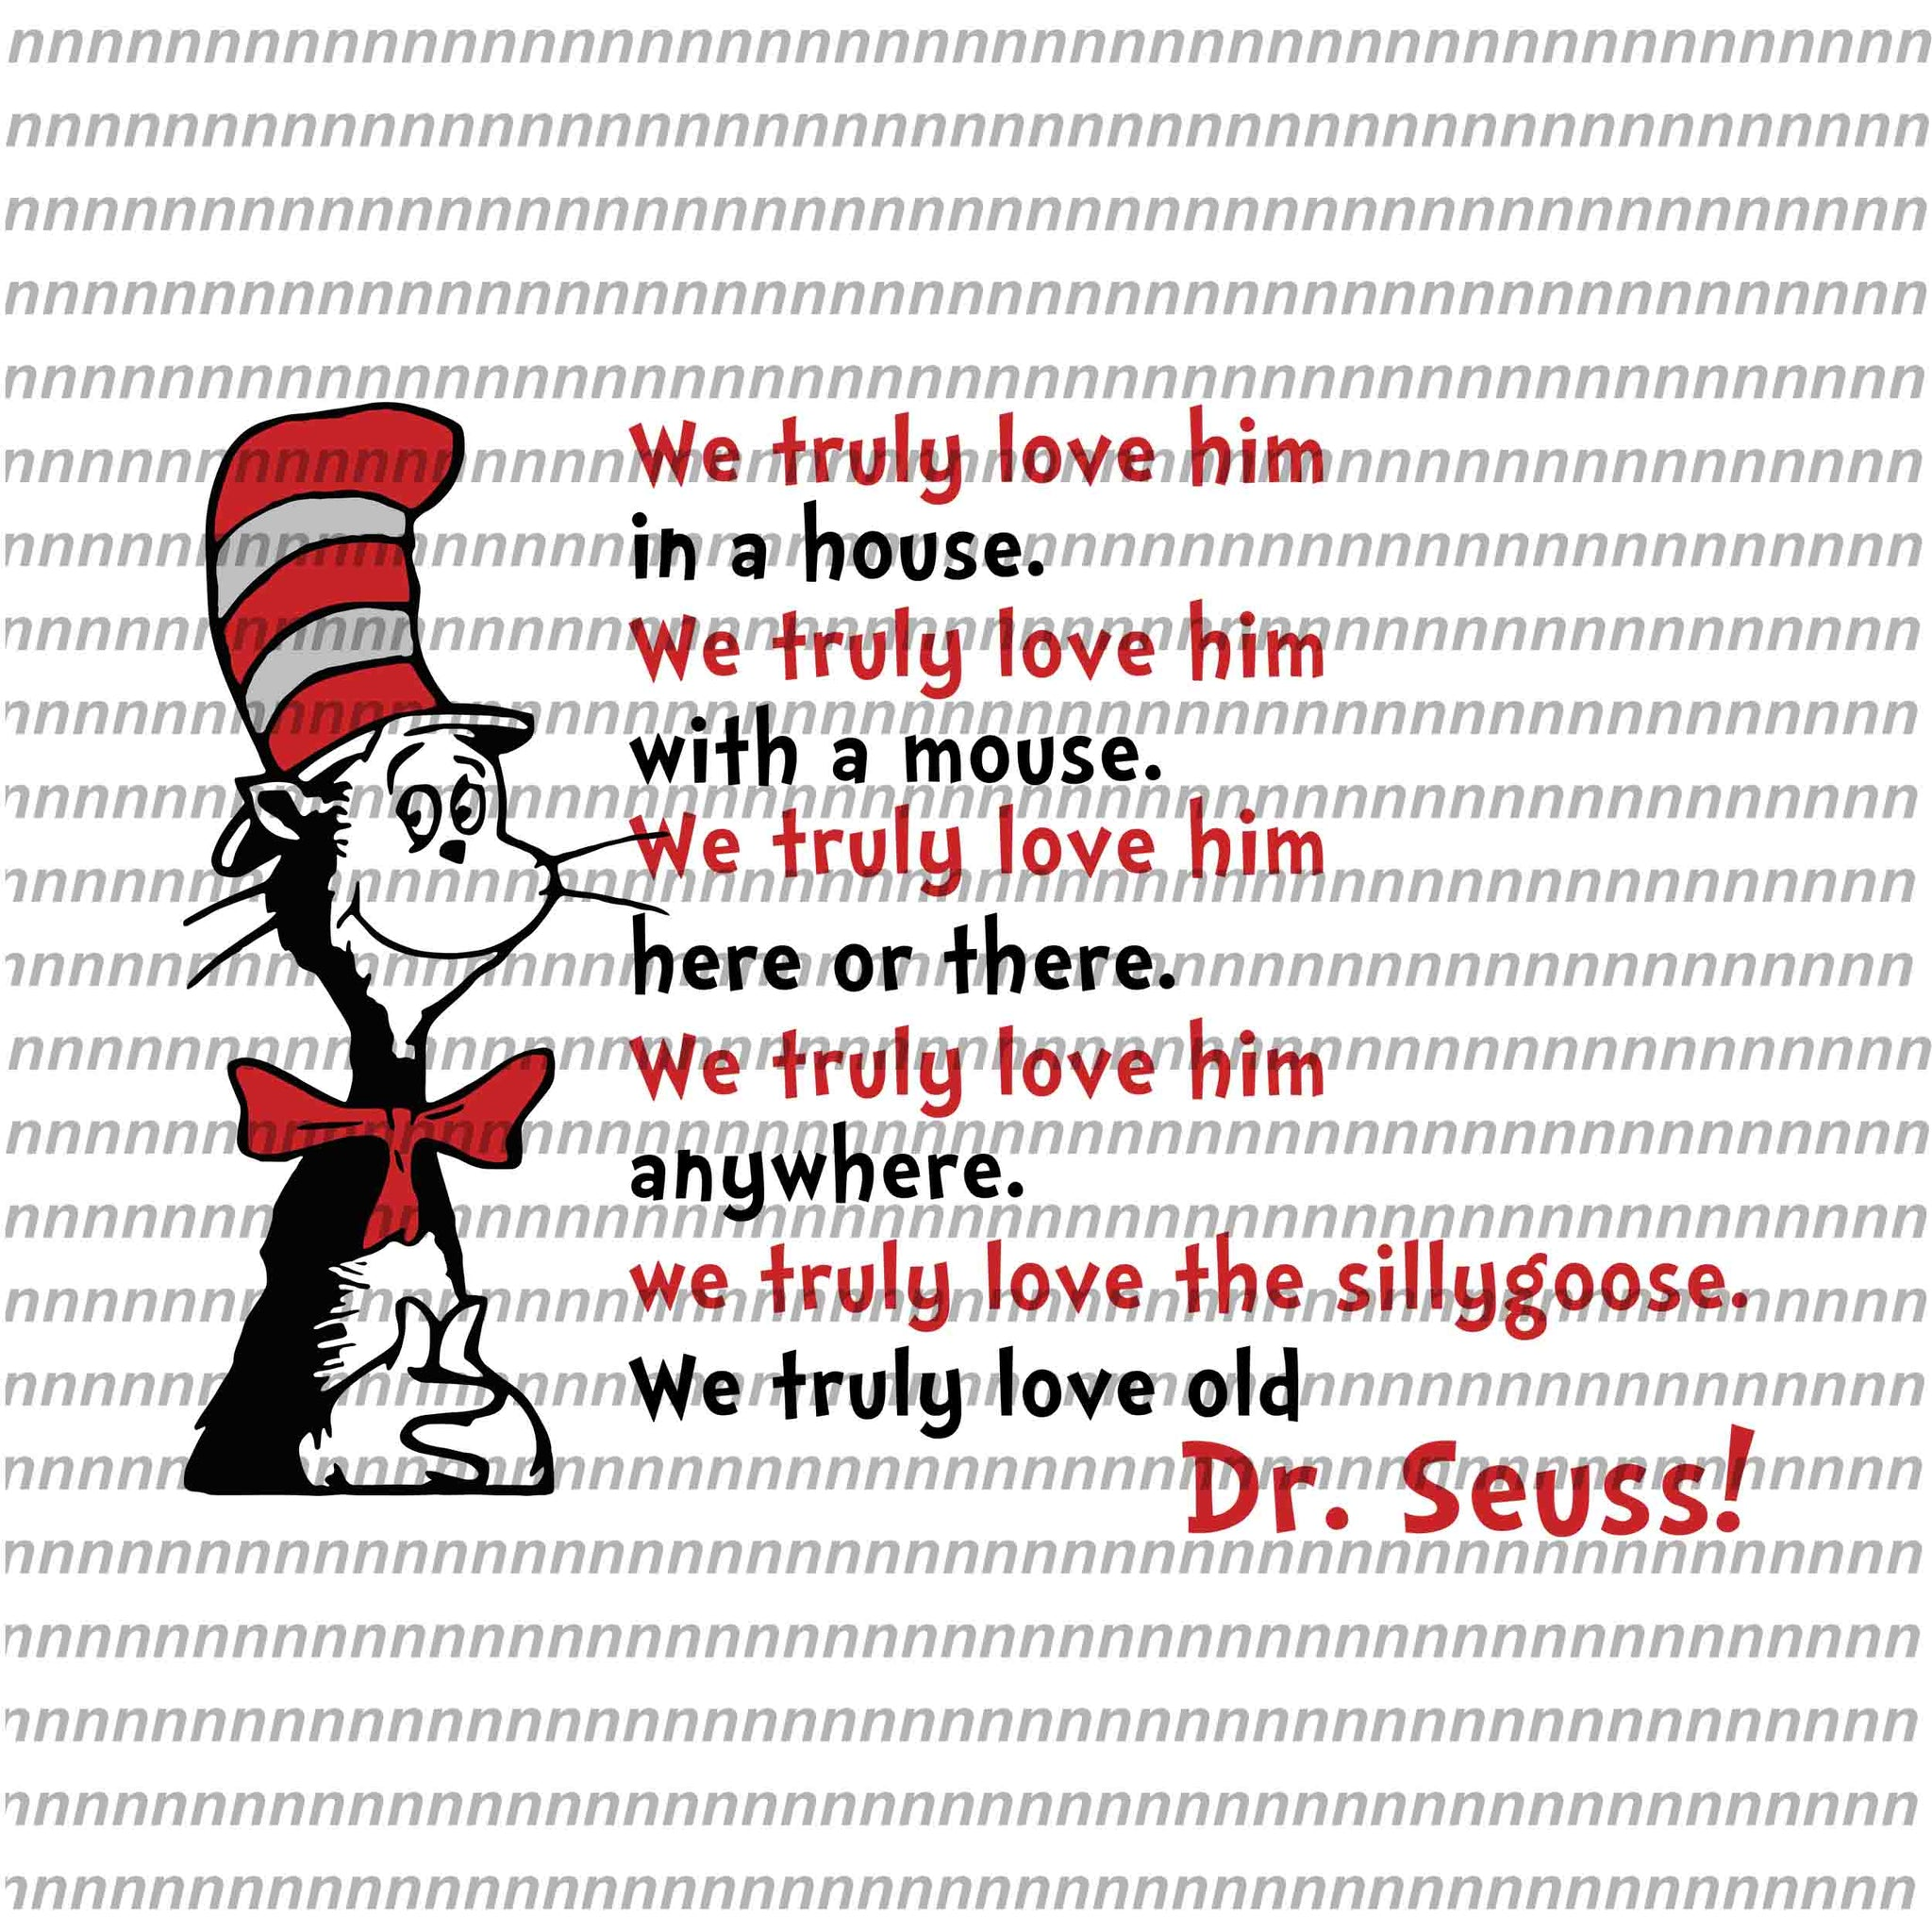 We truly love him in a house, dr seuss svg, dr seuss quote, dr seuss design, Cat in the hat svg, thing 1 thing 2 thing 3, svg, png, dxf, eps file